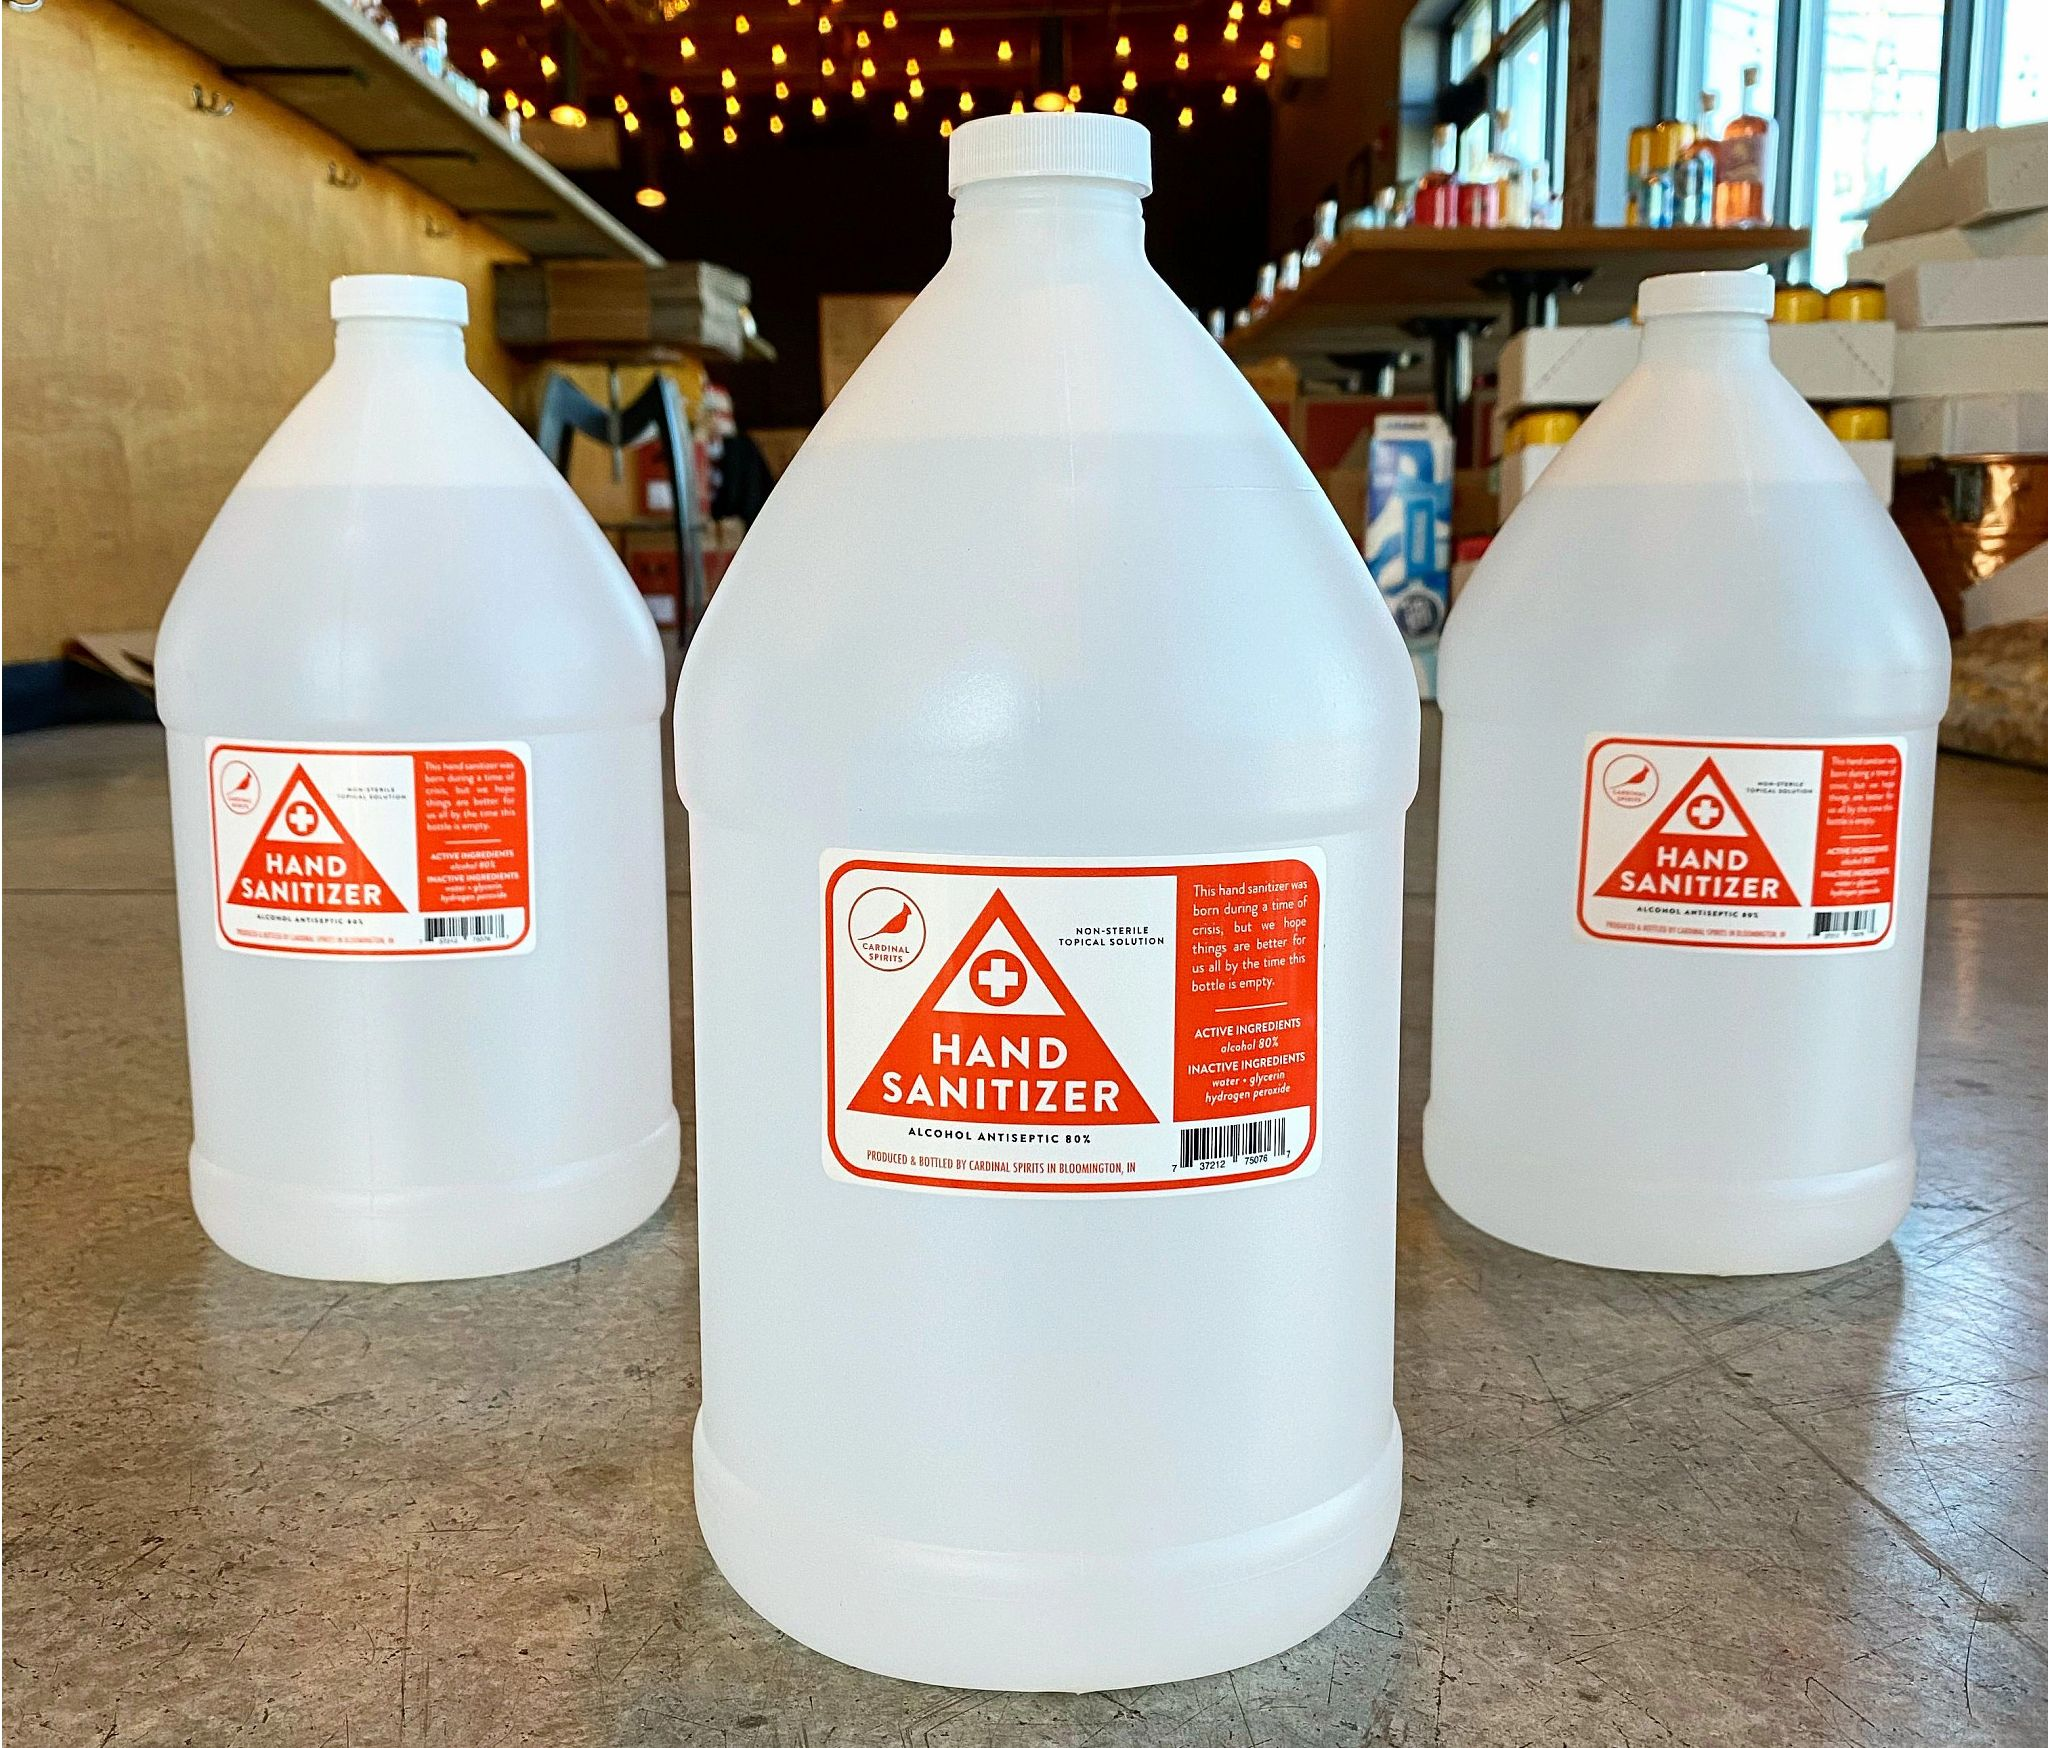 Three clear gallon jugs with red hand sanitizer labels sit on the floor.